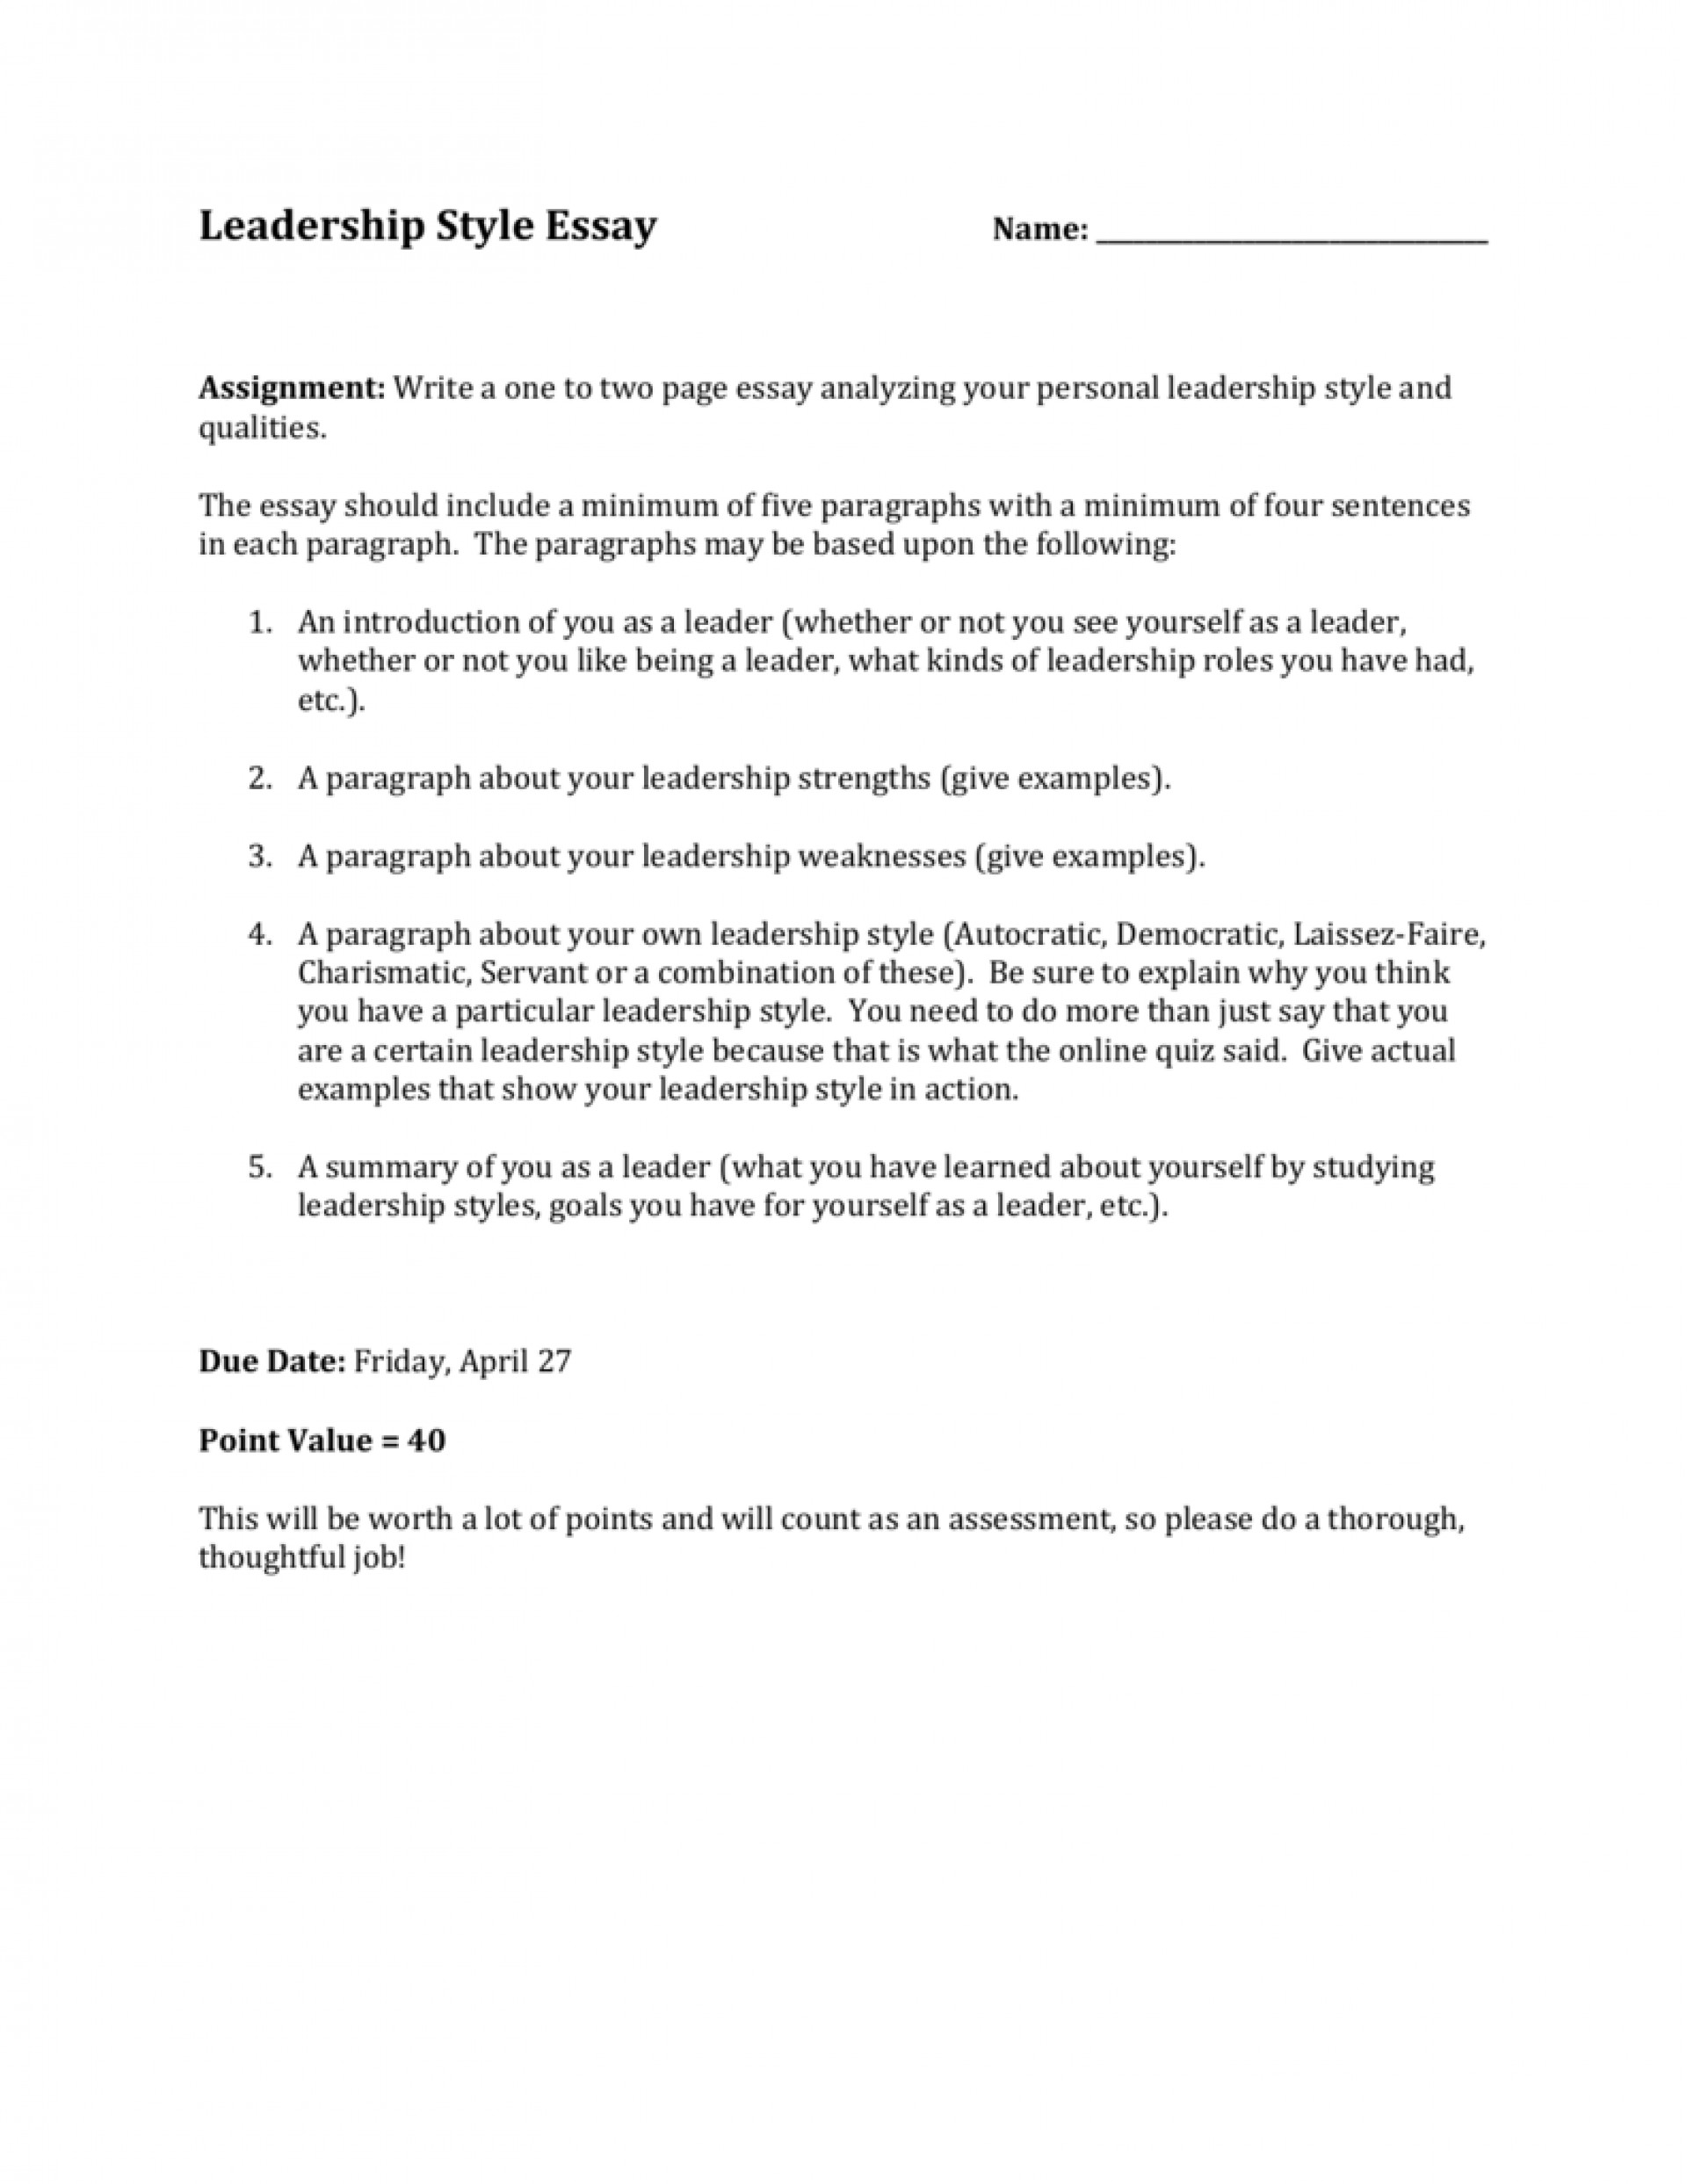 017 006906280 1 Being Leader Essay Imposing A Great College Qualities Of Pdf 1920